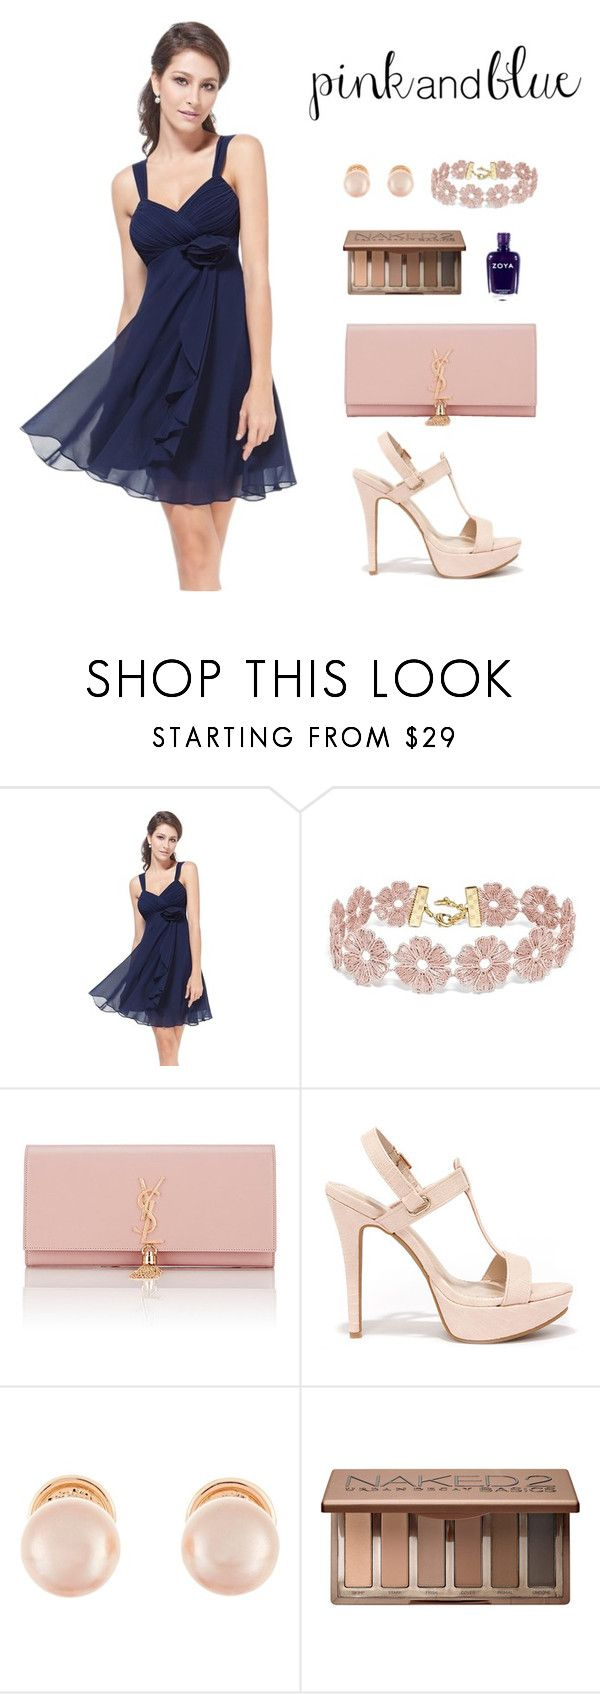 """""""Pink and blue graduation"""" by fantalisa on Polyvore featuring moda, BaubleBar, Yves Saint Laurent, Anne Michelle, Kenneth Jay Lane, Urban Decay e Zoya"""